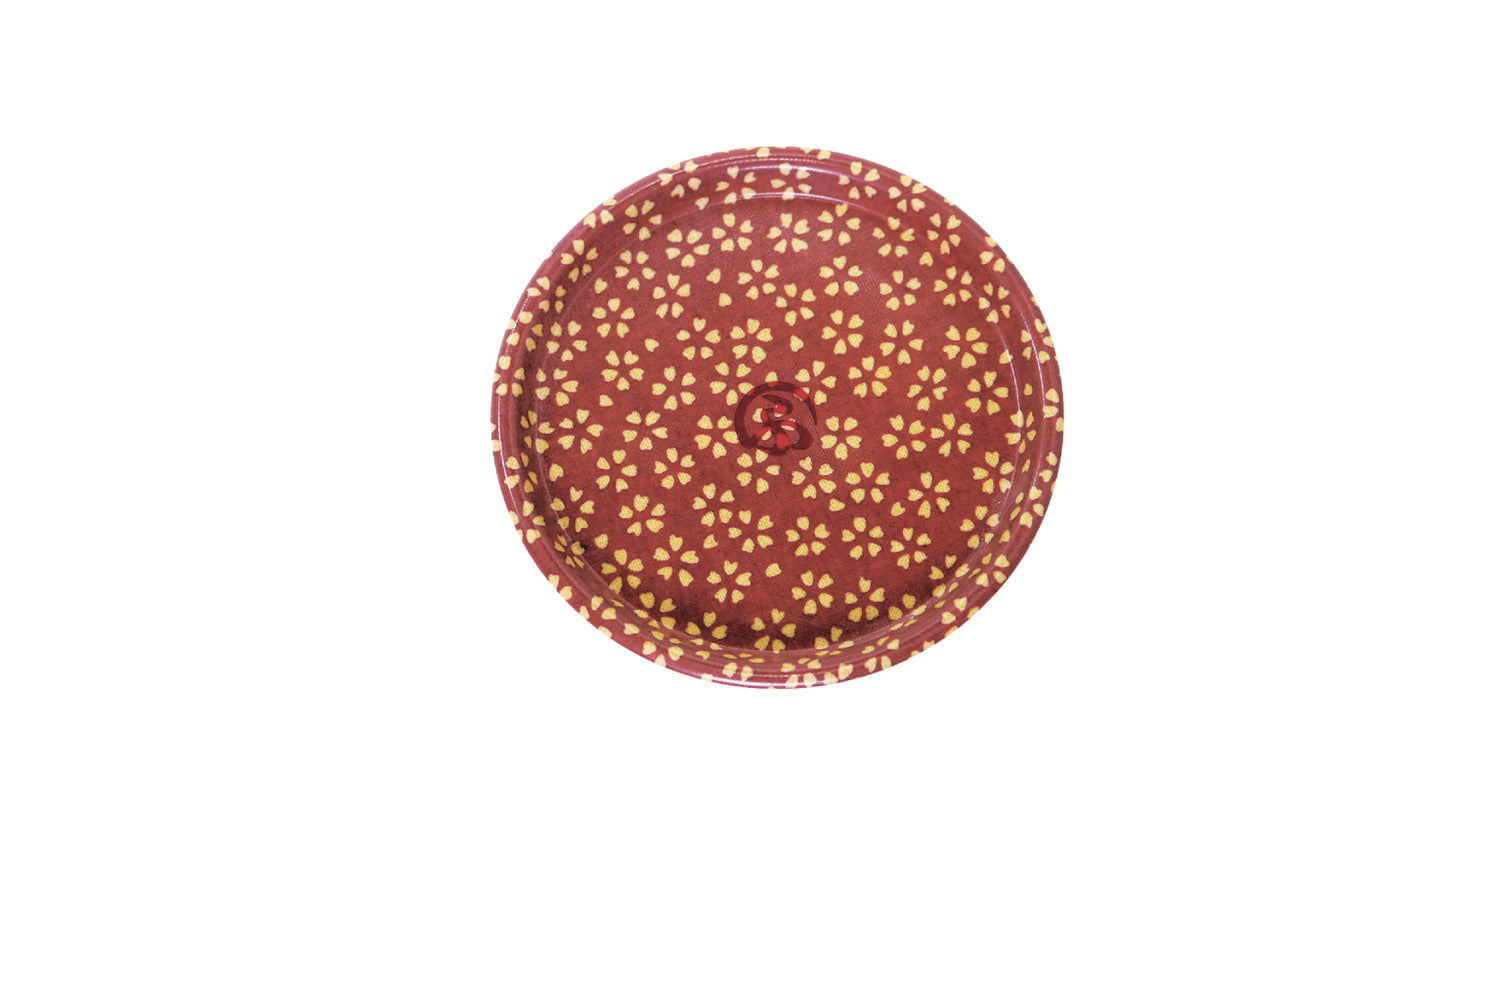 Wafu Cloth Drink Coaster | Sakura Blossom